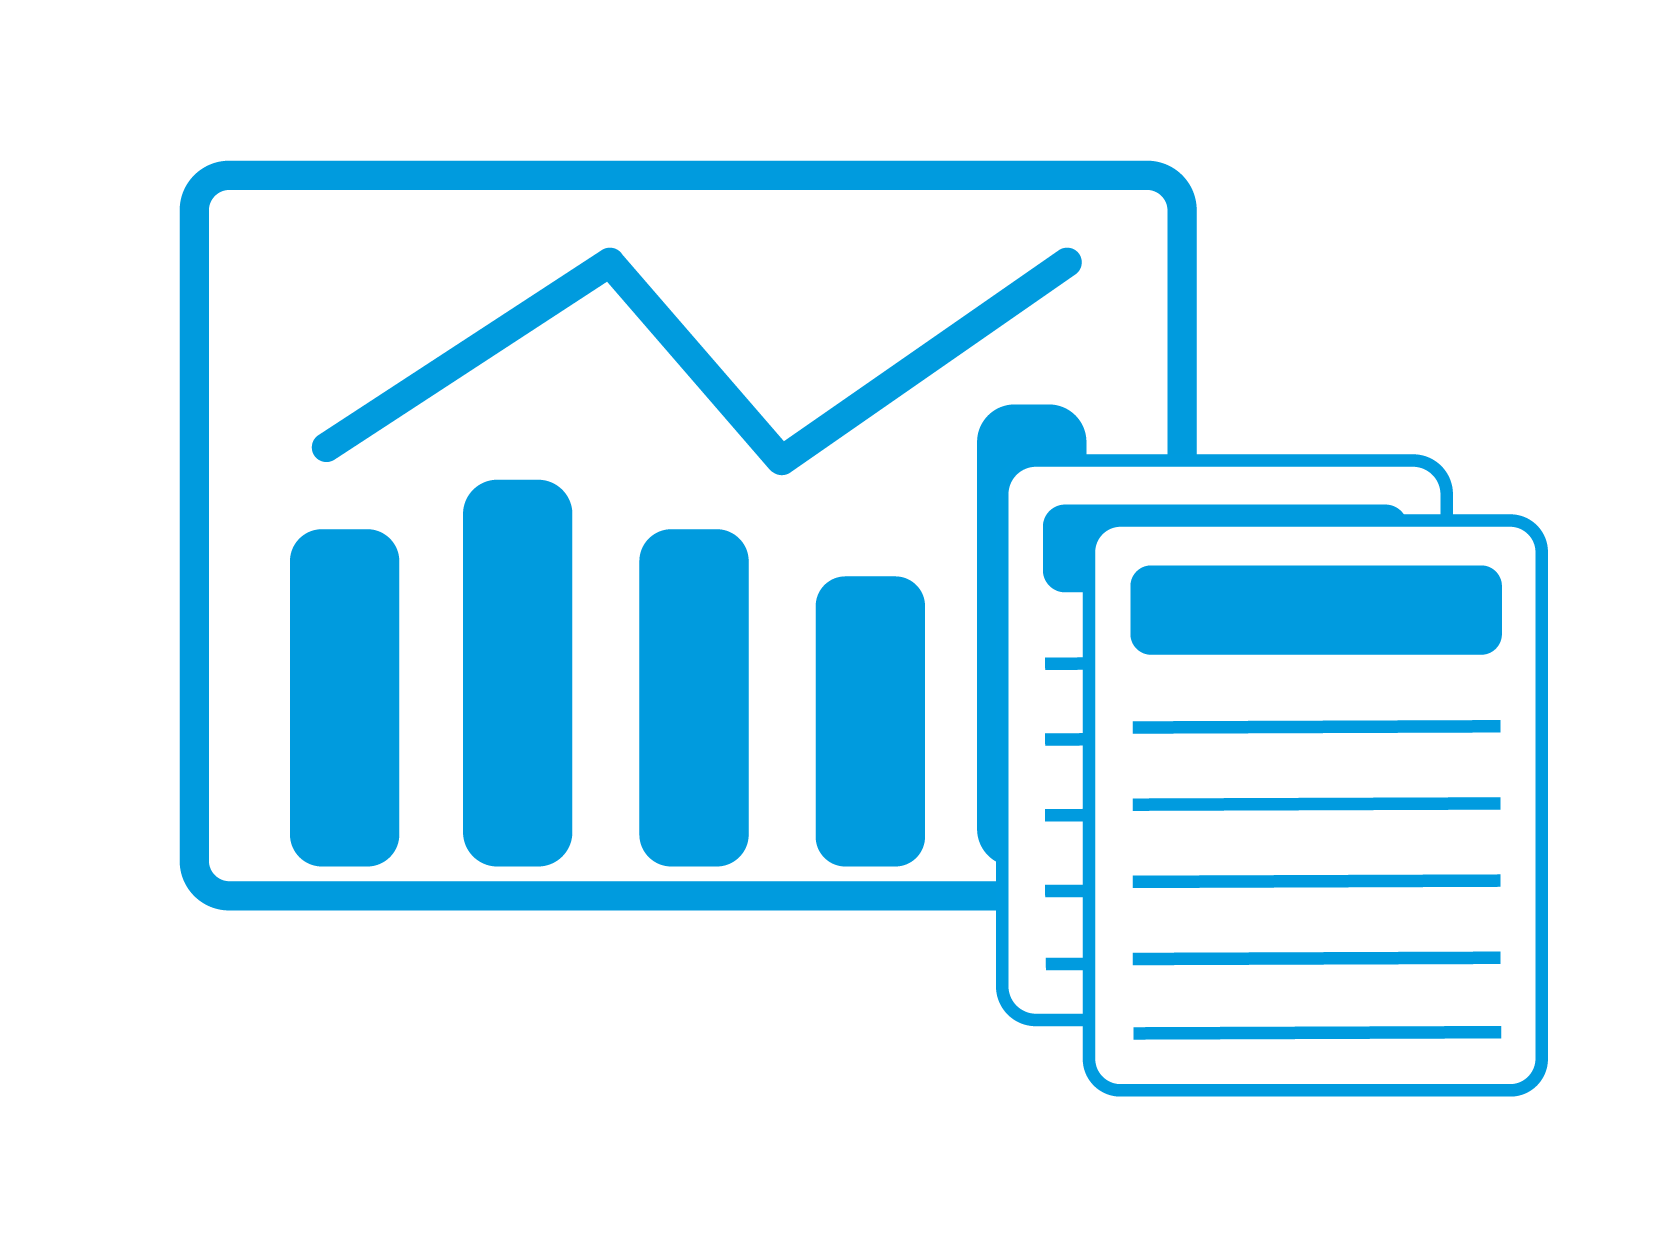 Controlling and Monitoring Expenses Icon